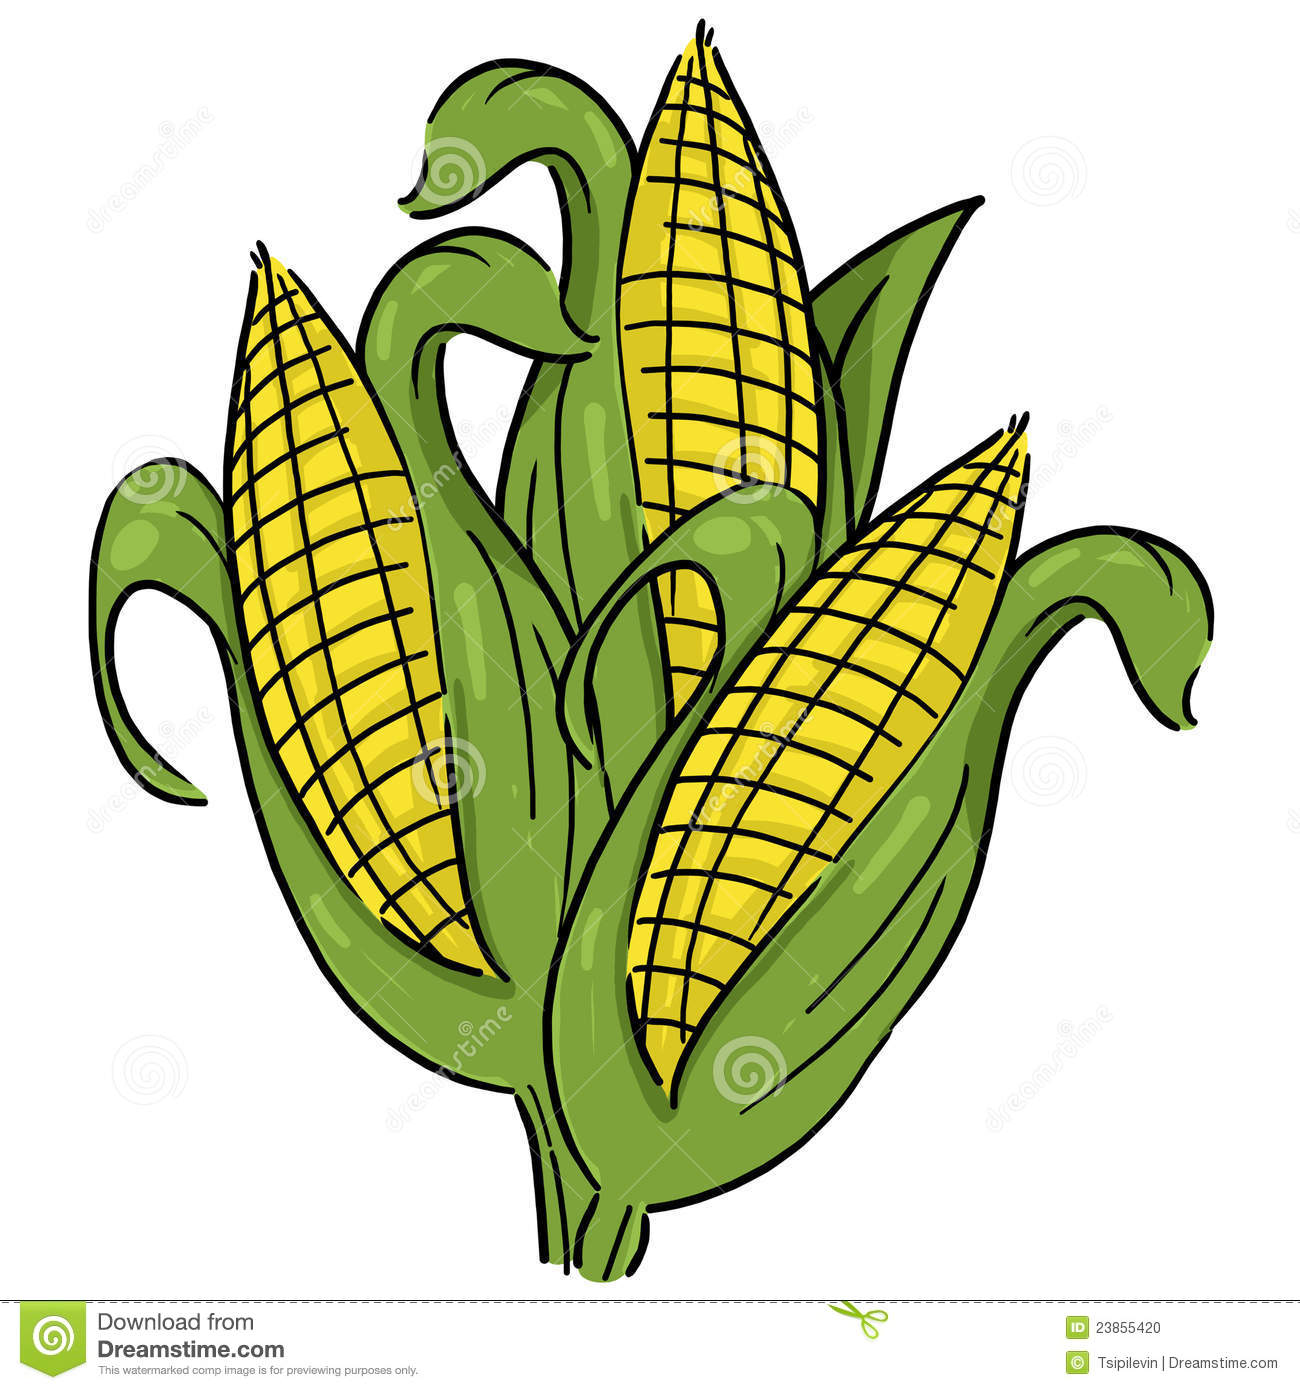 Corn Crops Clipart Ears Of Corn Illustration